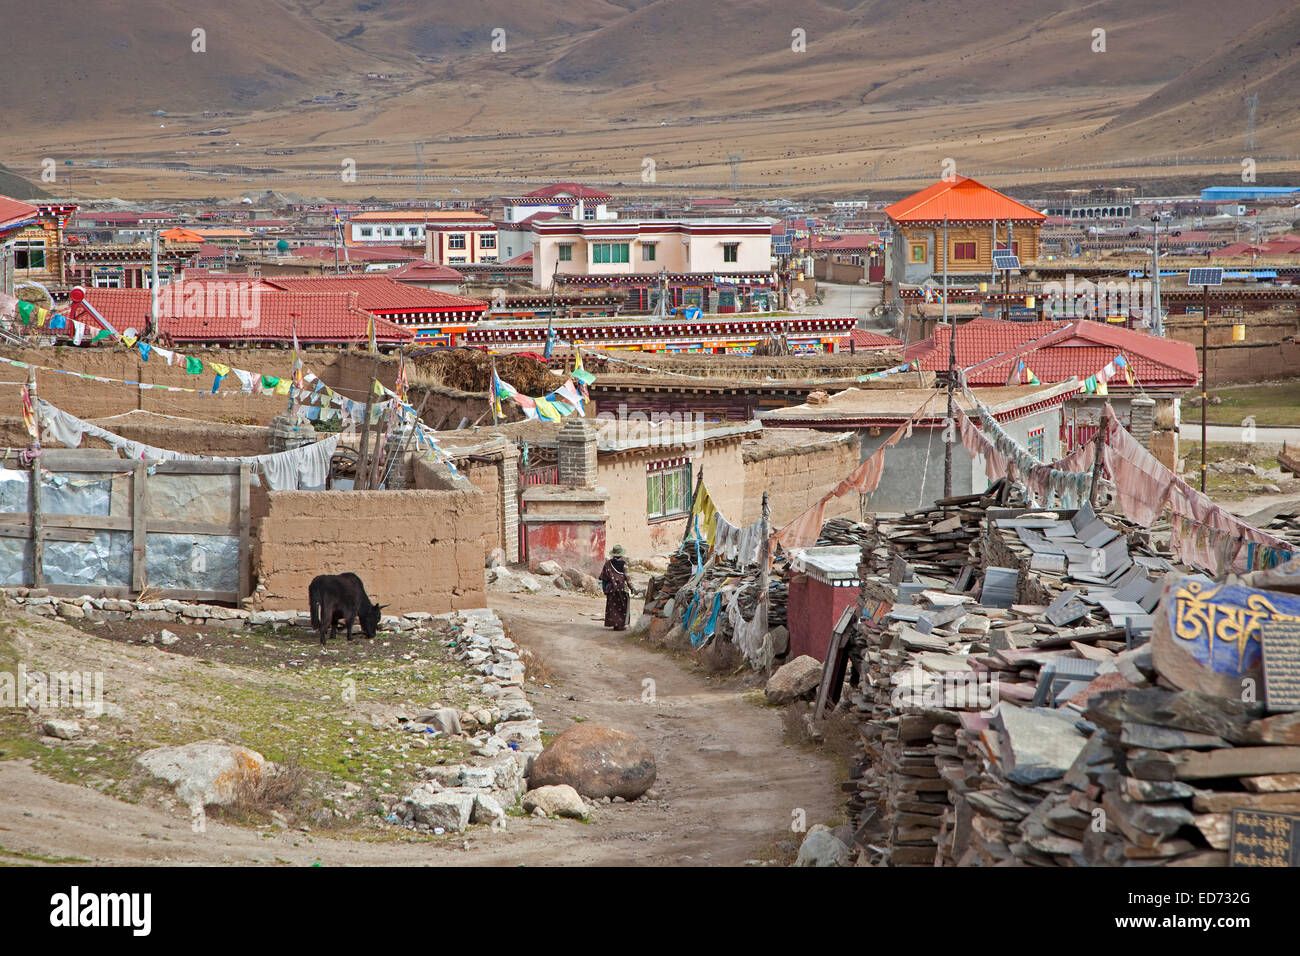 View over the village Zhuqing, Sichuan Province, China - Stock Image